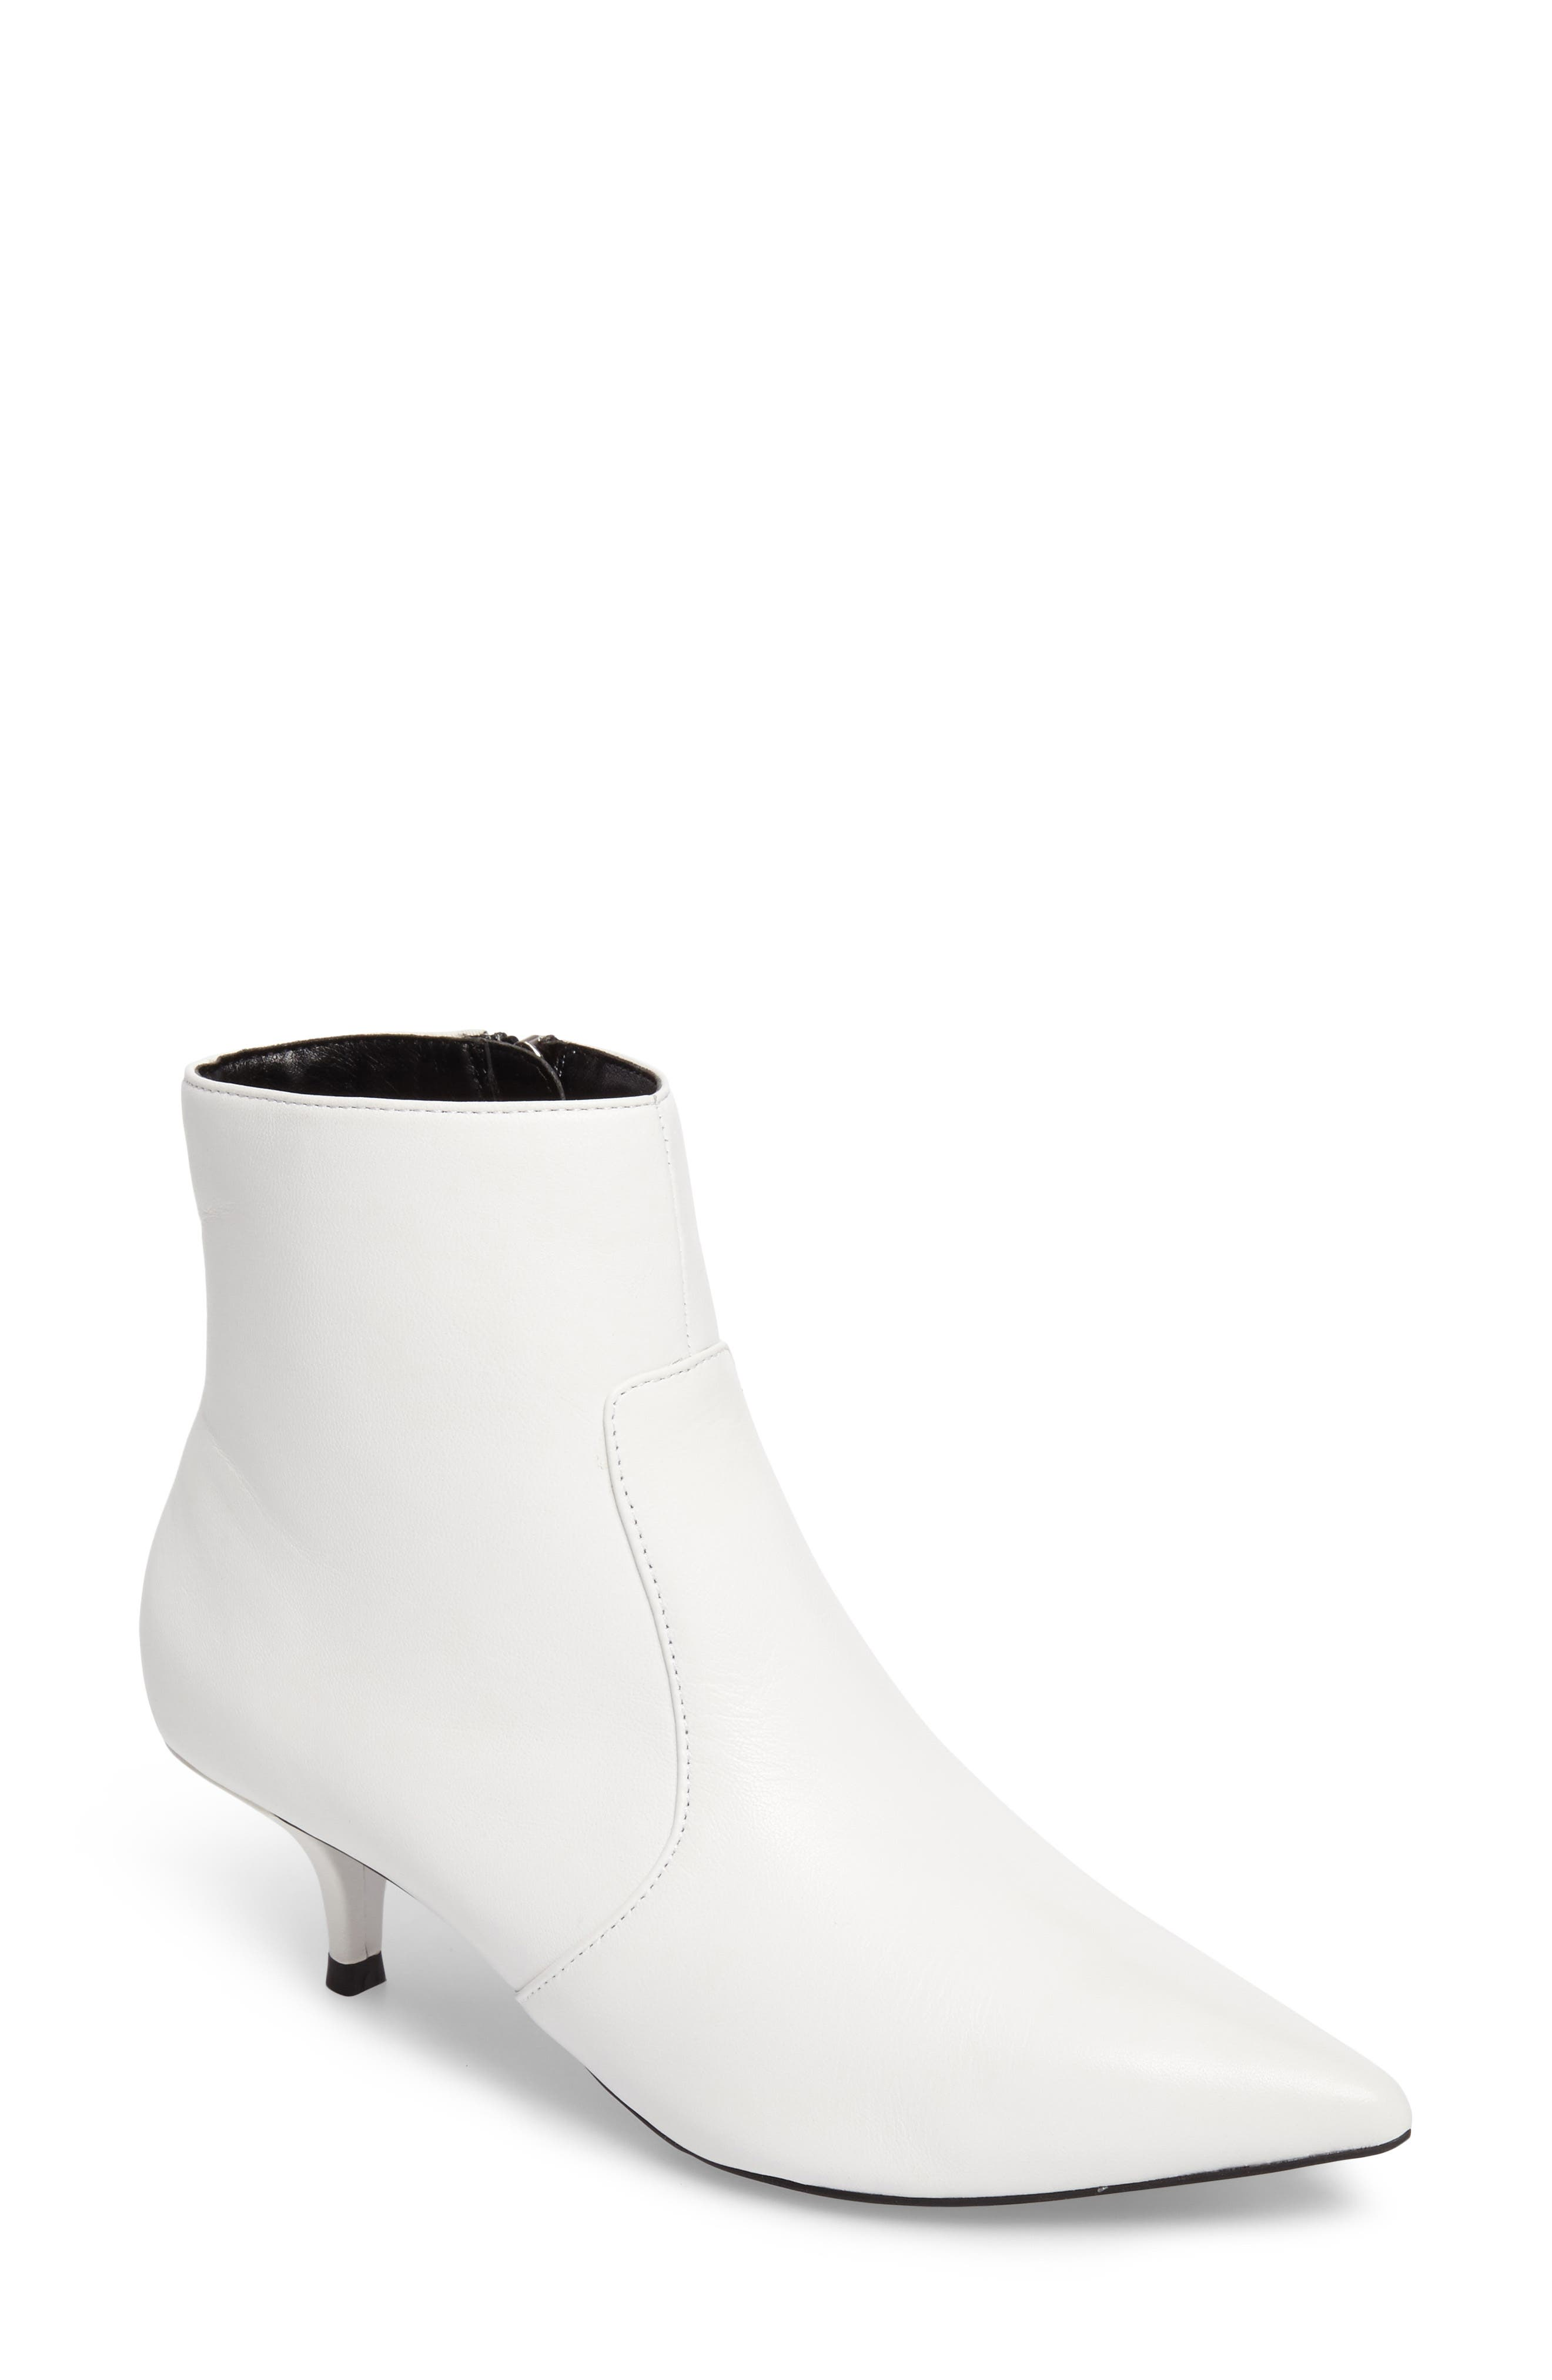 Alternate Image 1 Selected - Topshop Abba Pointy Toe Bootie (Women)